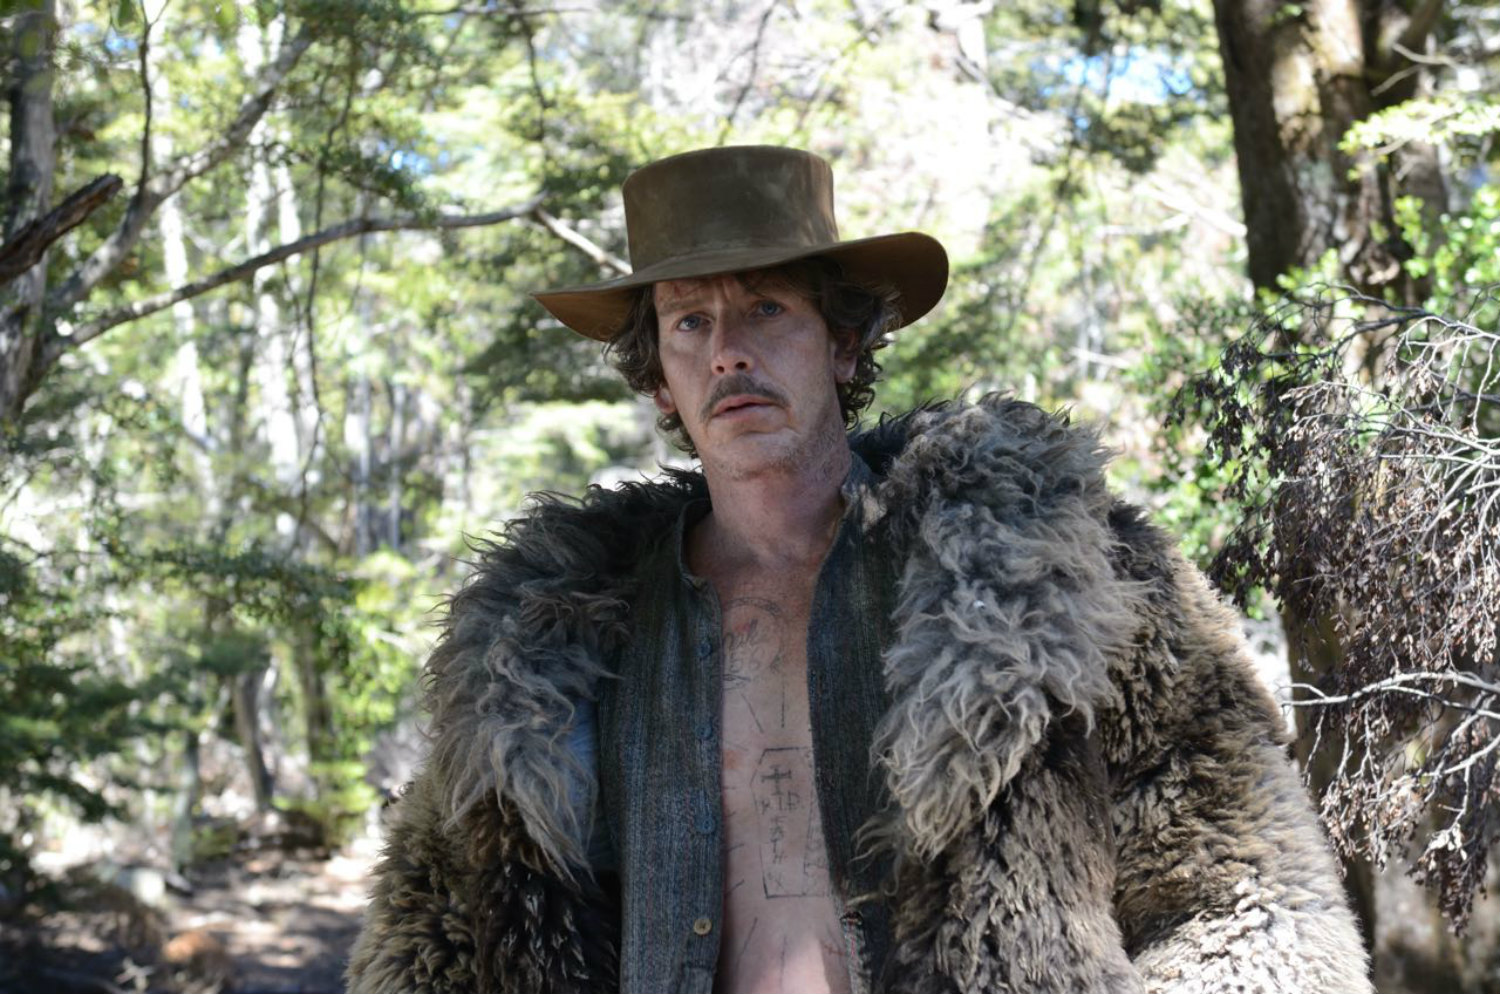 slow west film 2015 horses mben mendelsen